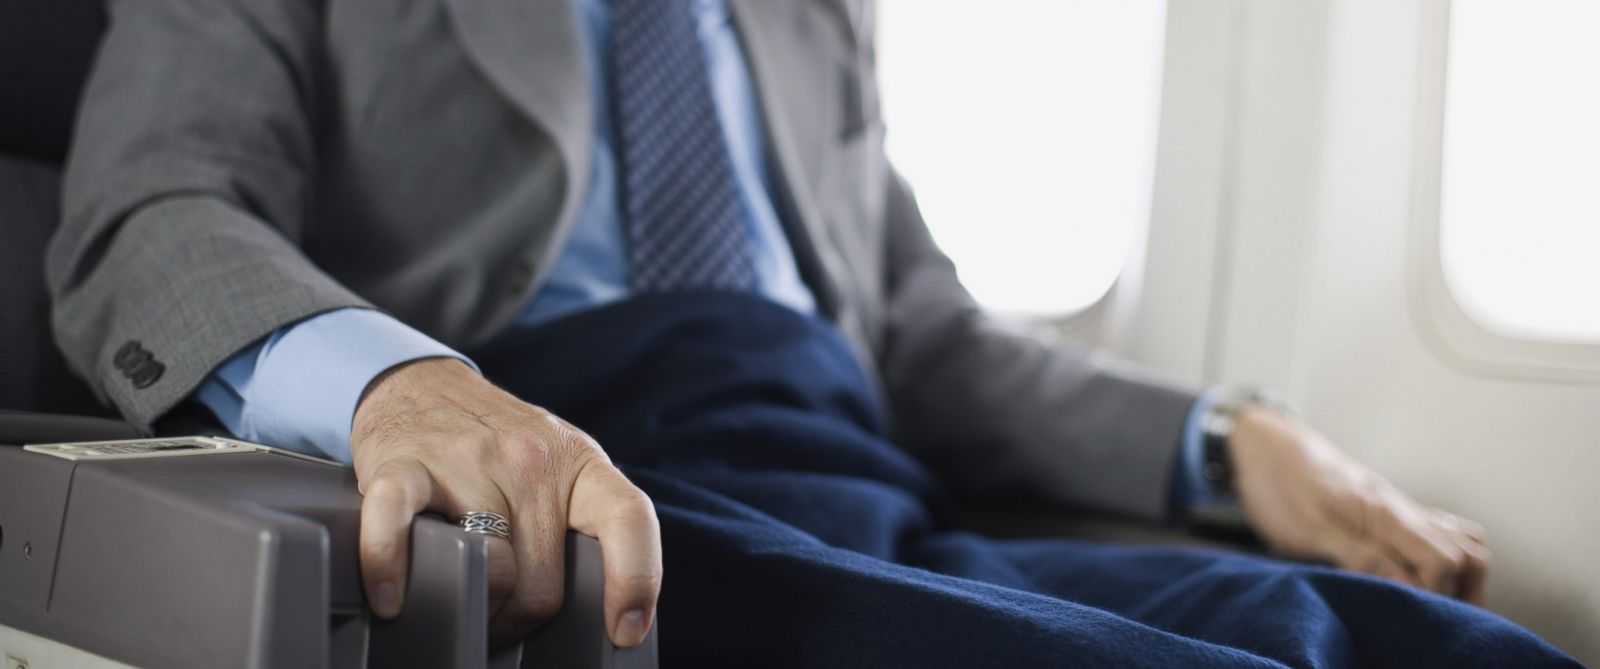 PHOTO: A nervous passenger grabs the armrest of his seat during a flight in this stock photo.